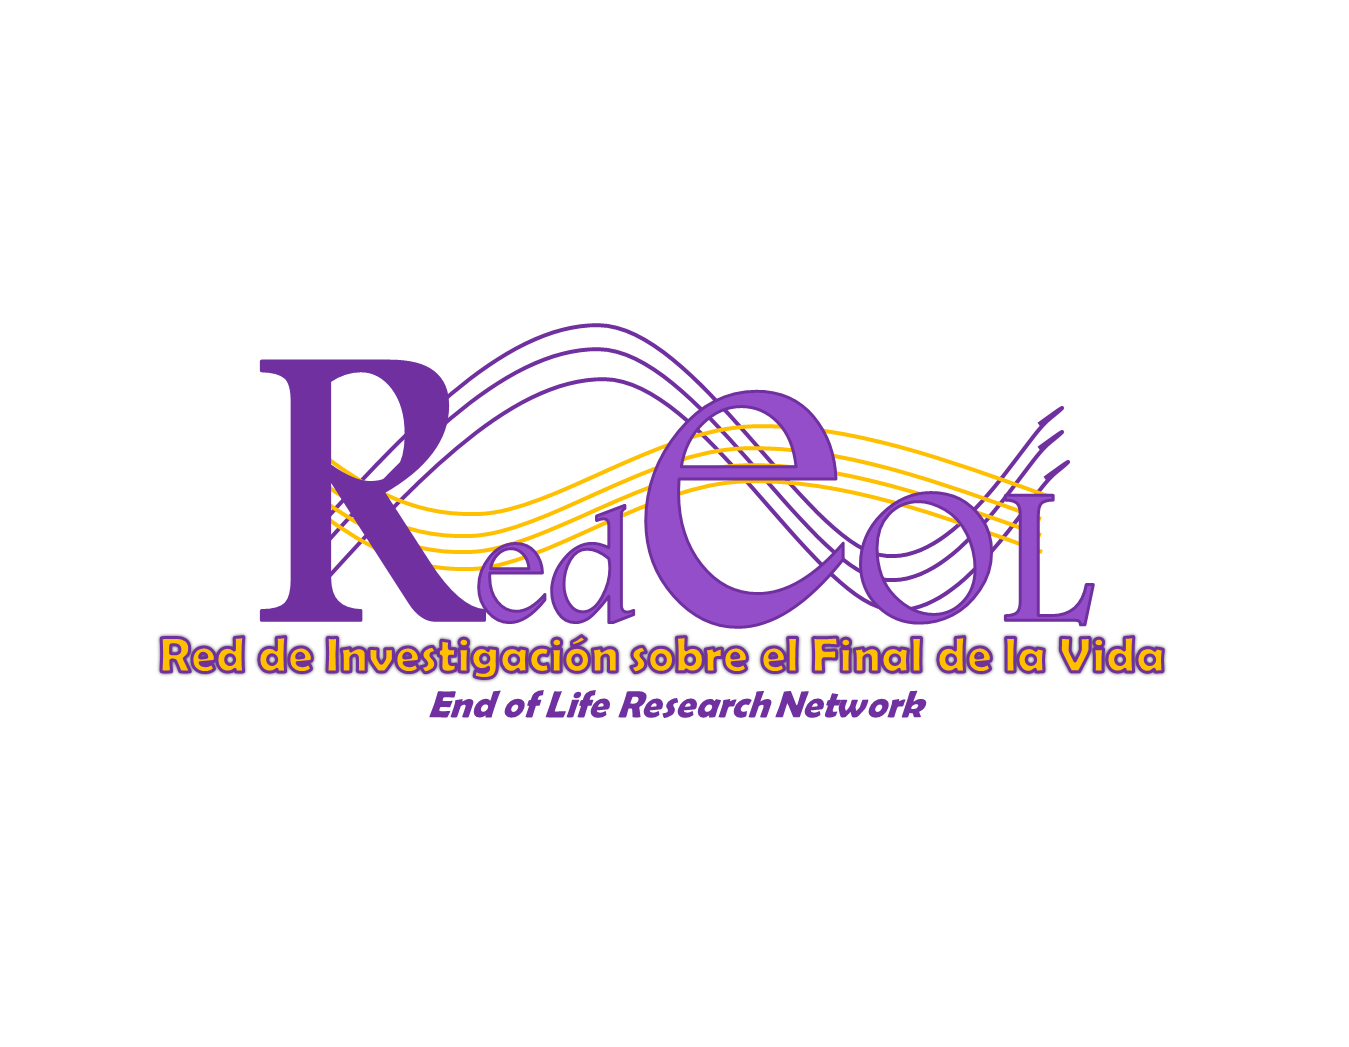 logo red eol